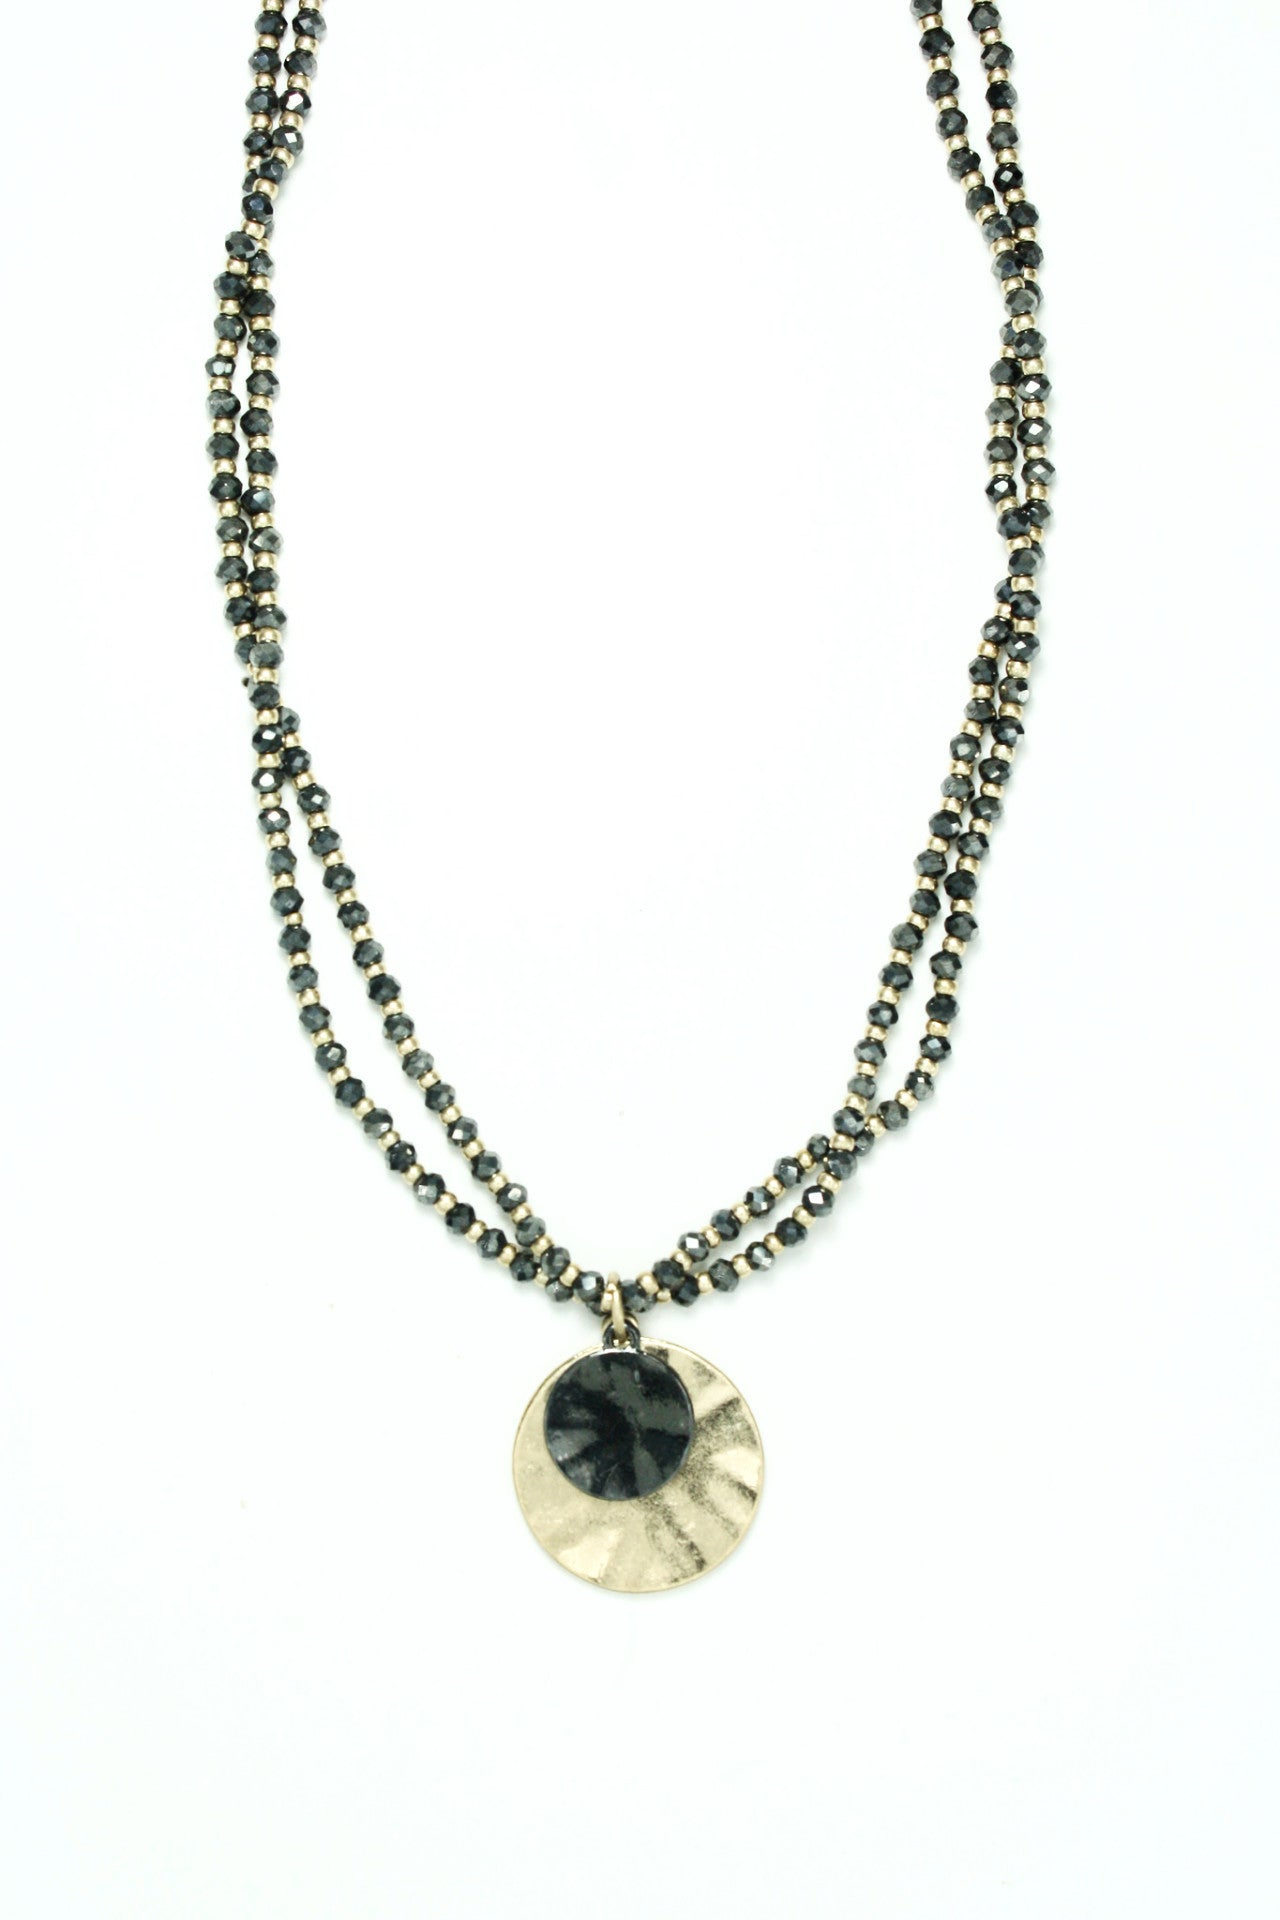 2 STRAND CRYSTAL BEADED DUBLE DISC IN HEMETITE